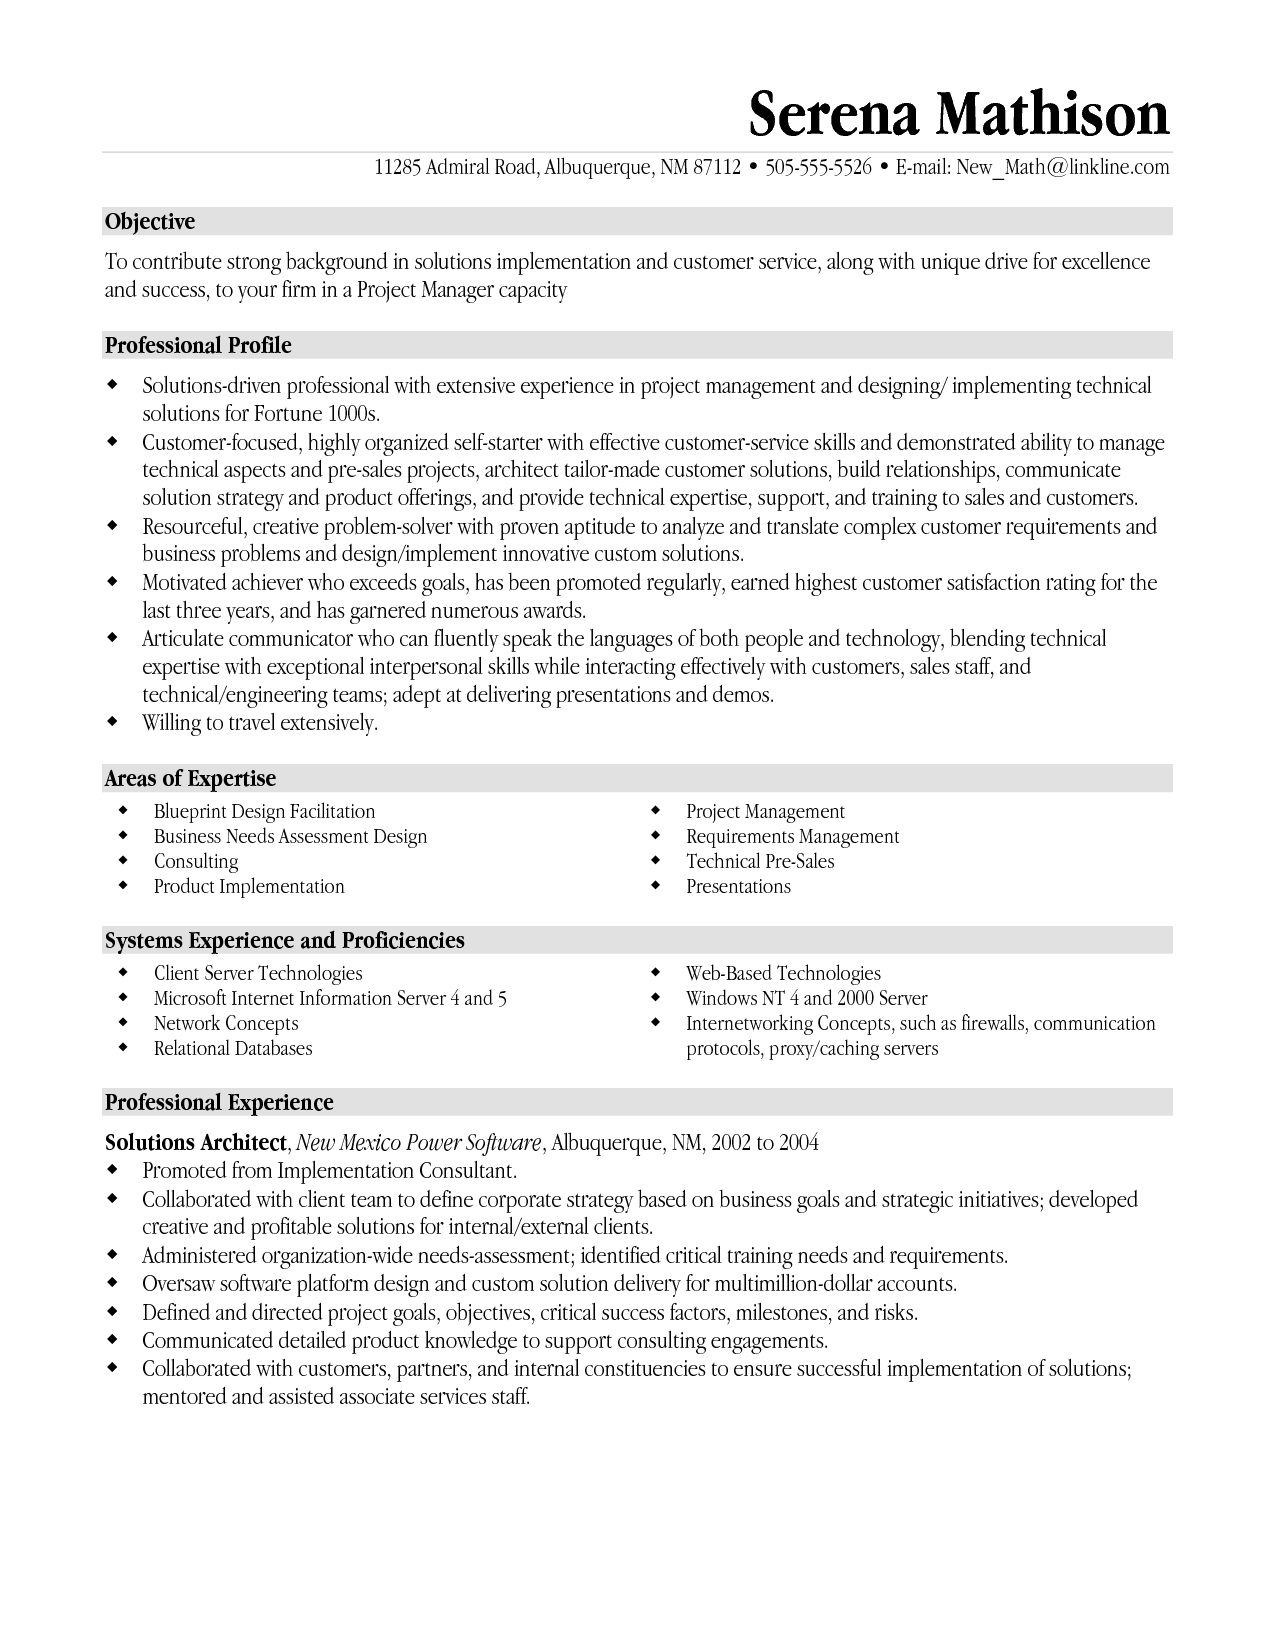 resume templates project manager project management resume - Project Management Resume Examples